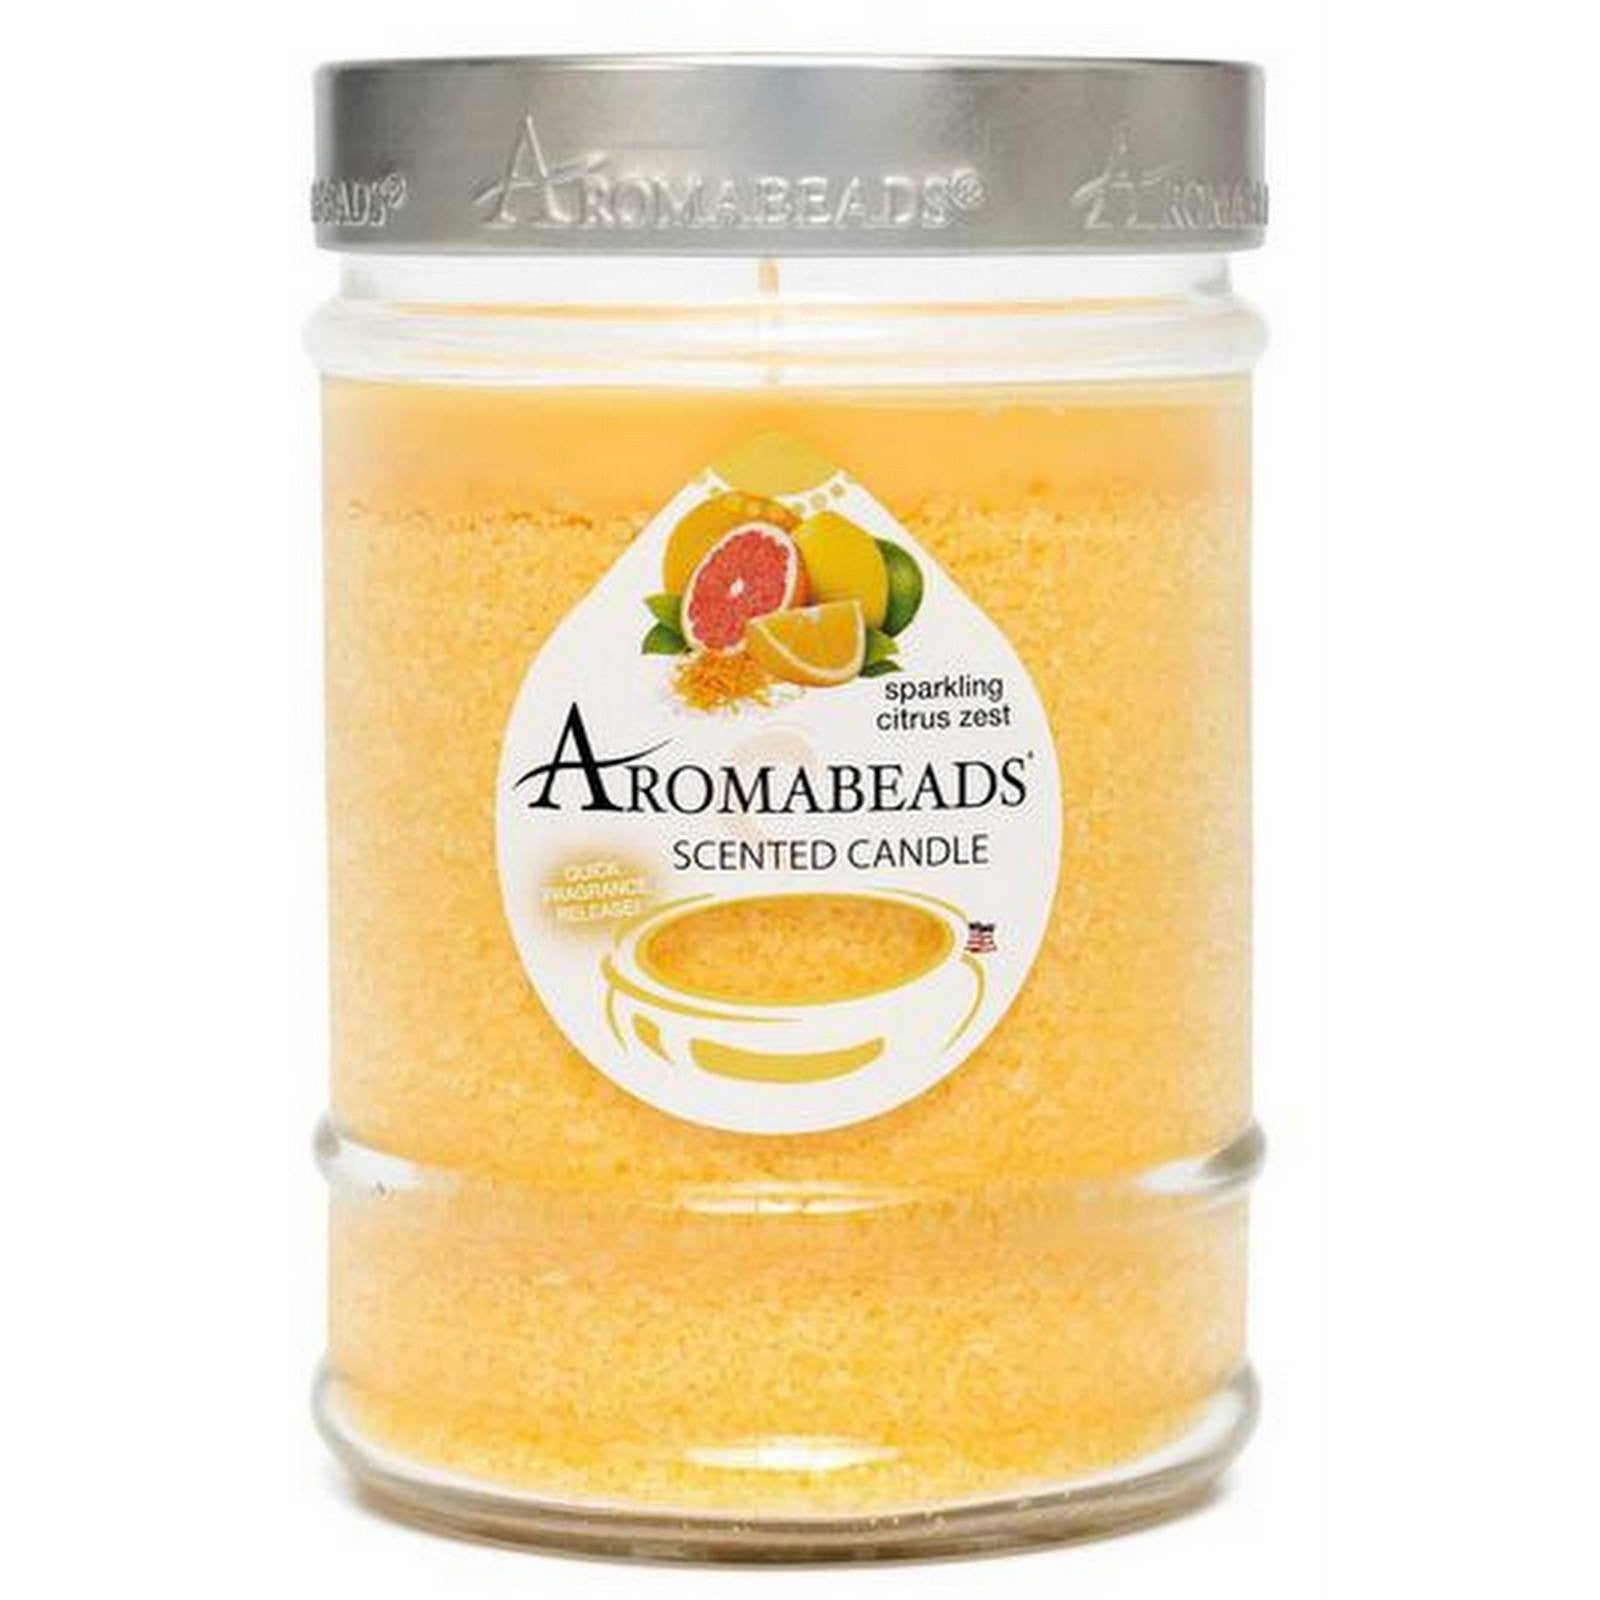 Aromabeads Sparkling Citrus Zest Scented Canister Candle - Candlemart.com